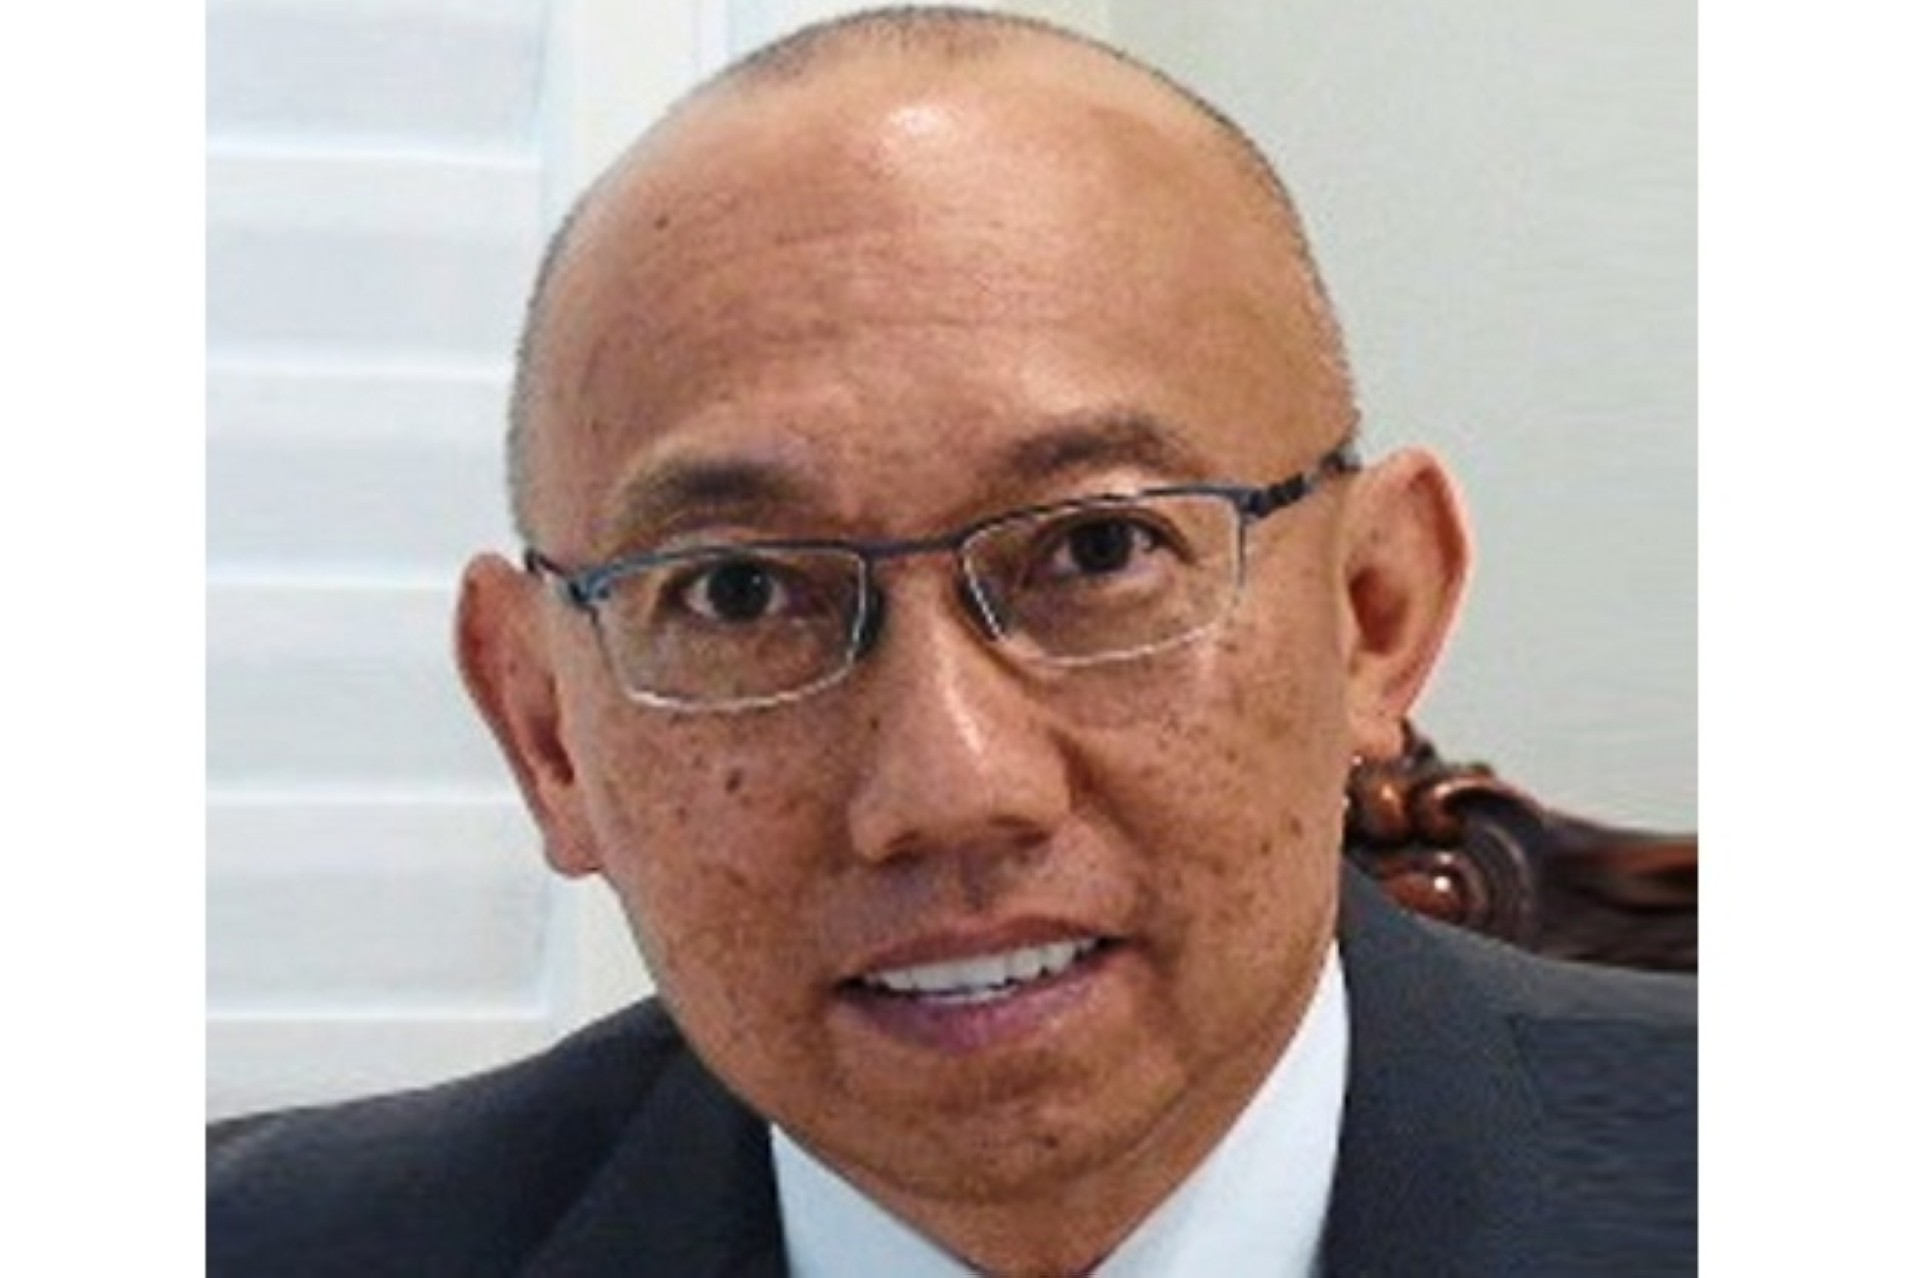 Mudajaya had taken a big hit in the fourth quarter of 2018 on a rising share of losses from its power plant project in India. Its chairman Datuk Yusli Mohamed Yusoff (pic) had then said the group was close to resolving the situation.